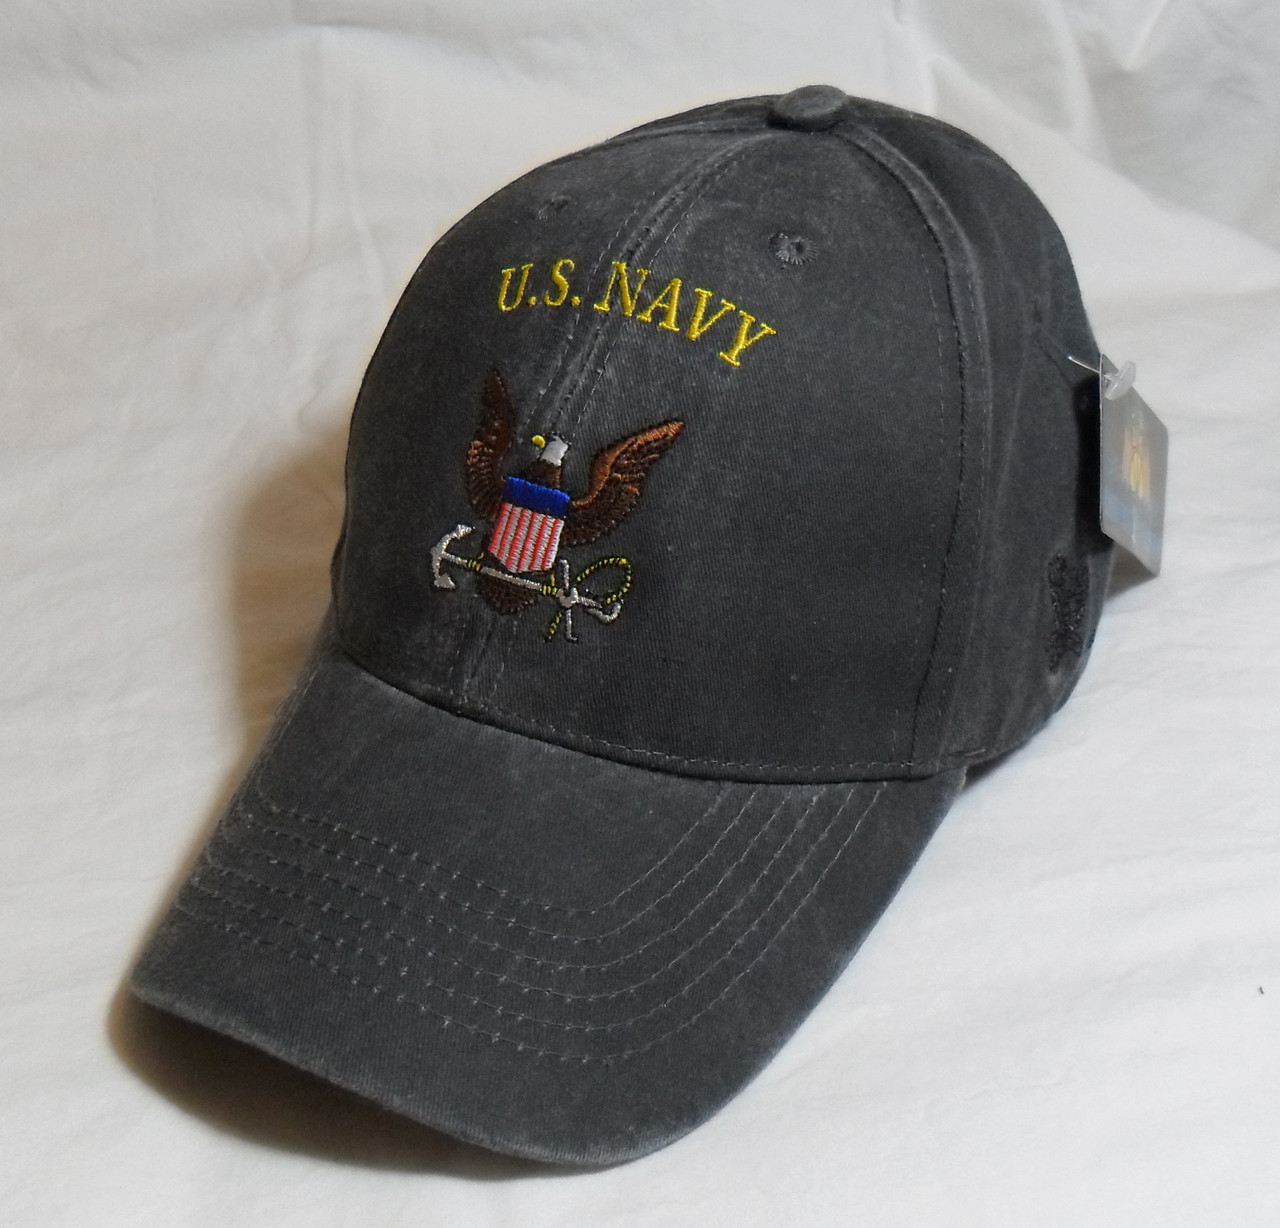 US NAVY UNITED STATES NAVY - Insignia Officially Licensed Baseball Cap Hat 5daa67c34cc1